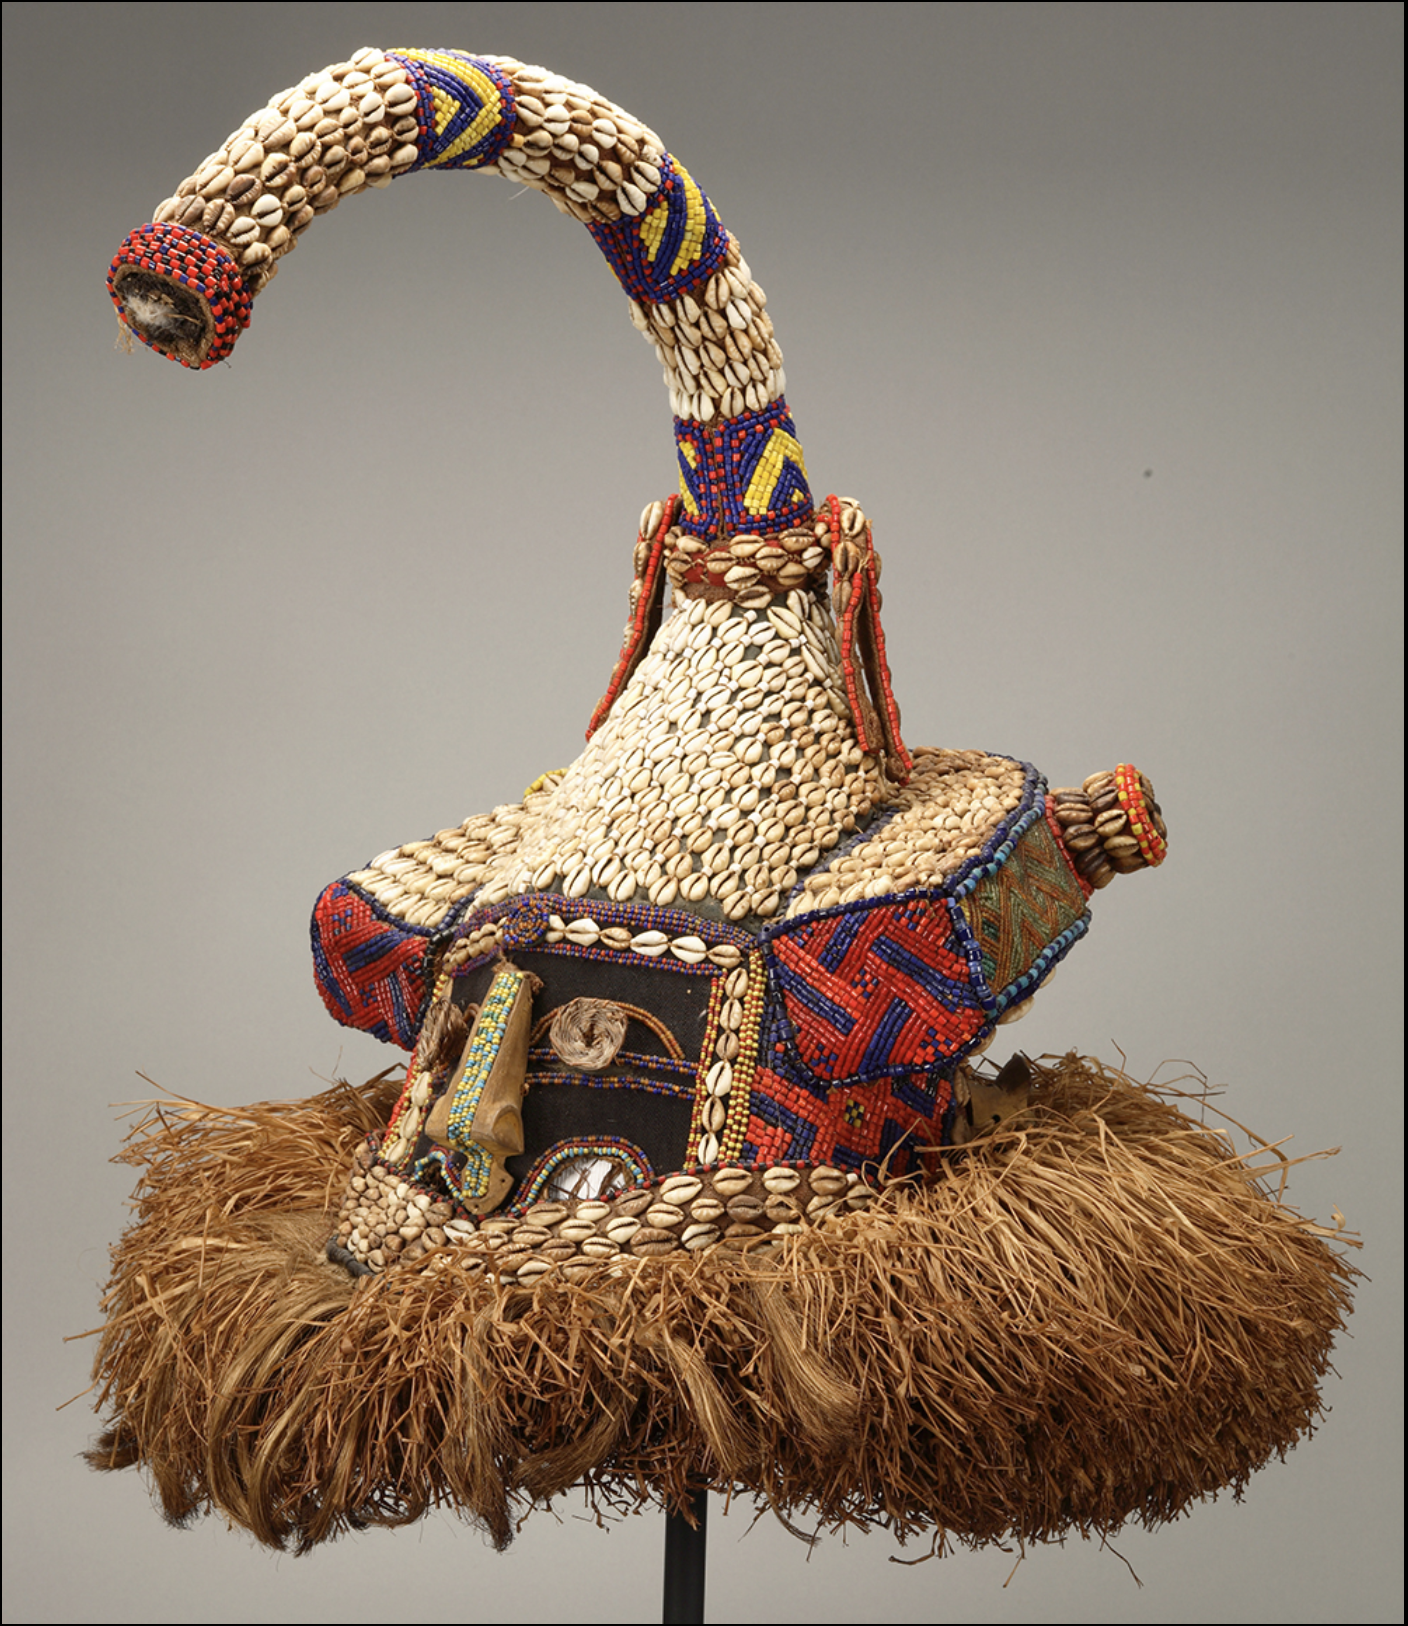 Mukyeem mask (Woot), Democratic Republic of the Congo